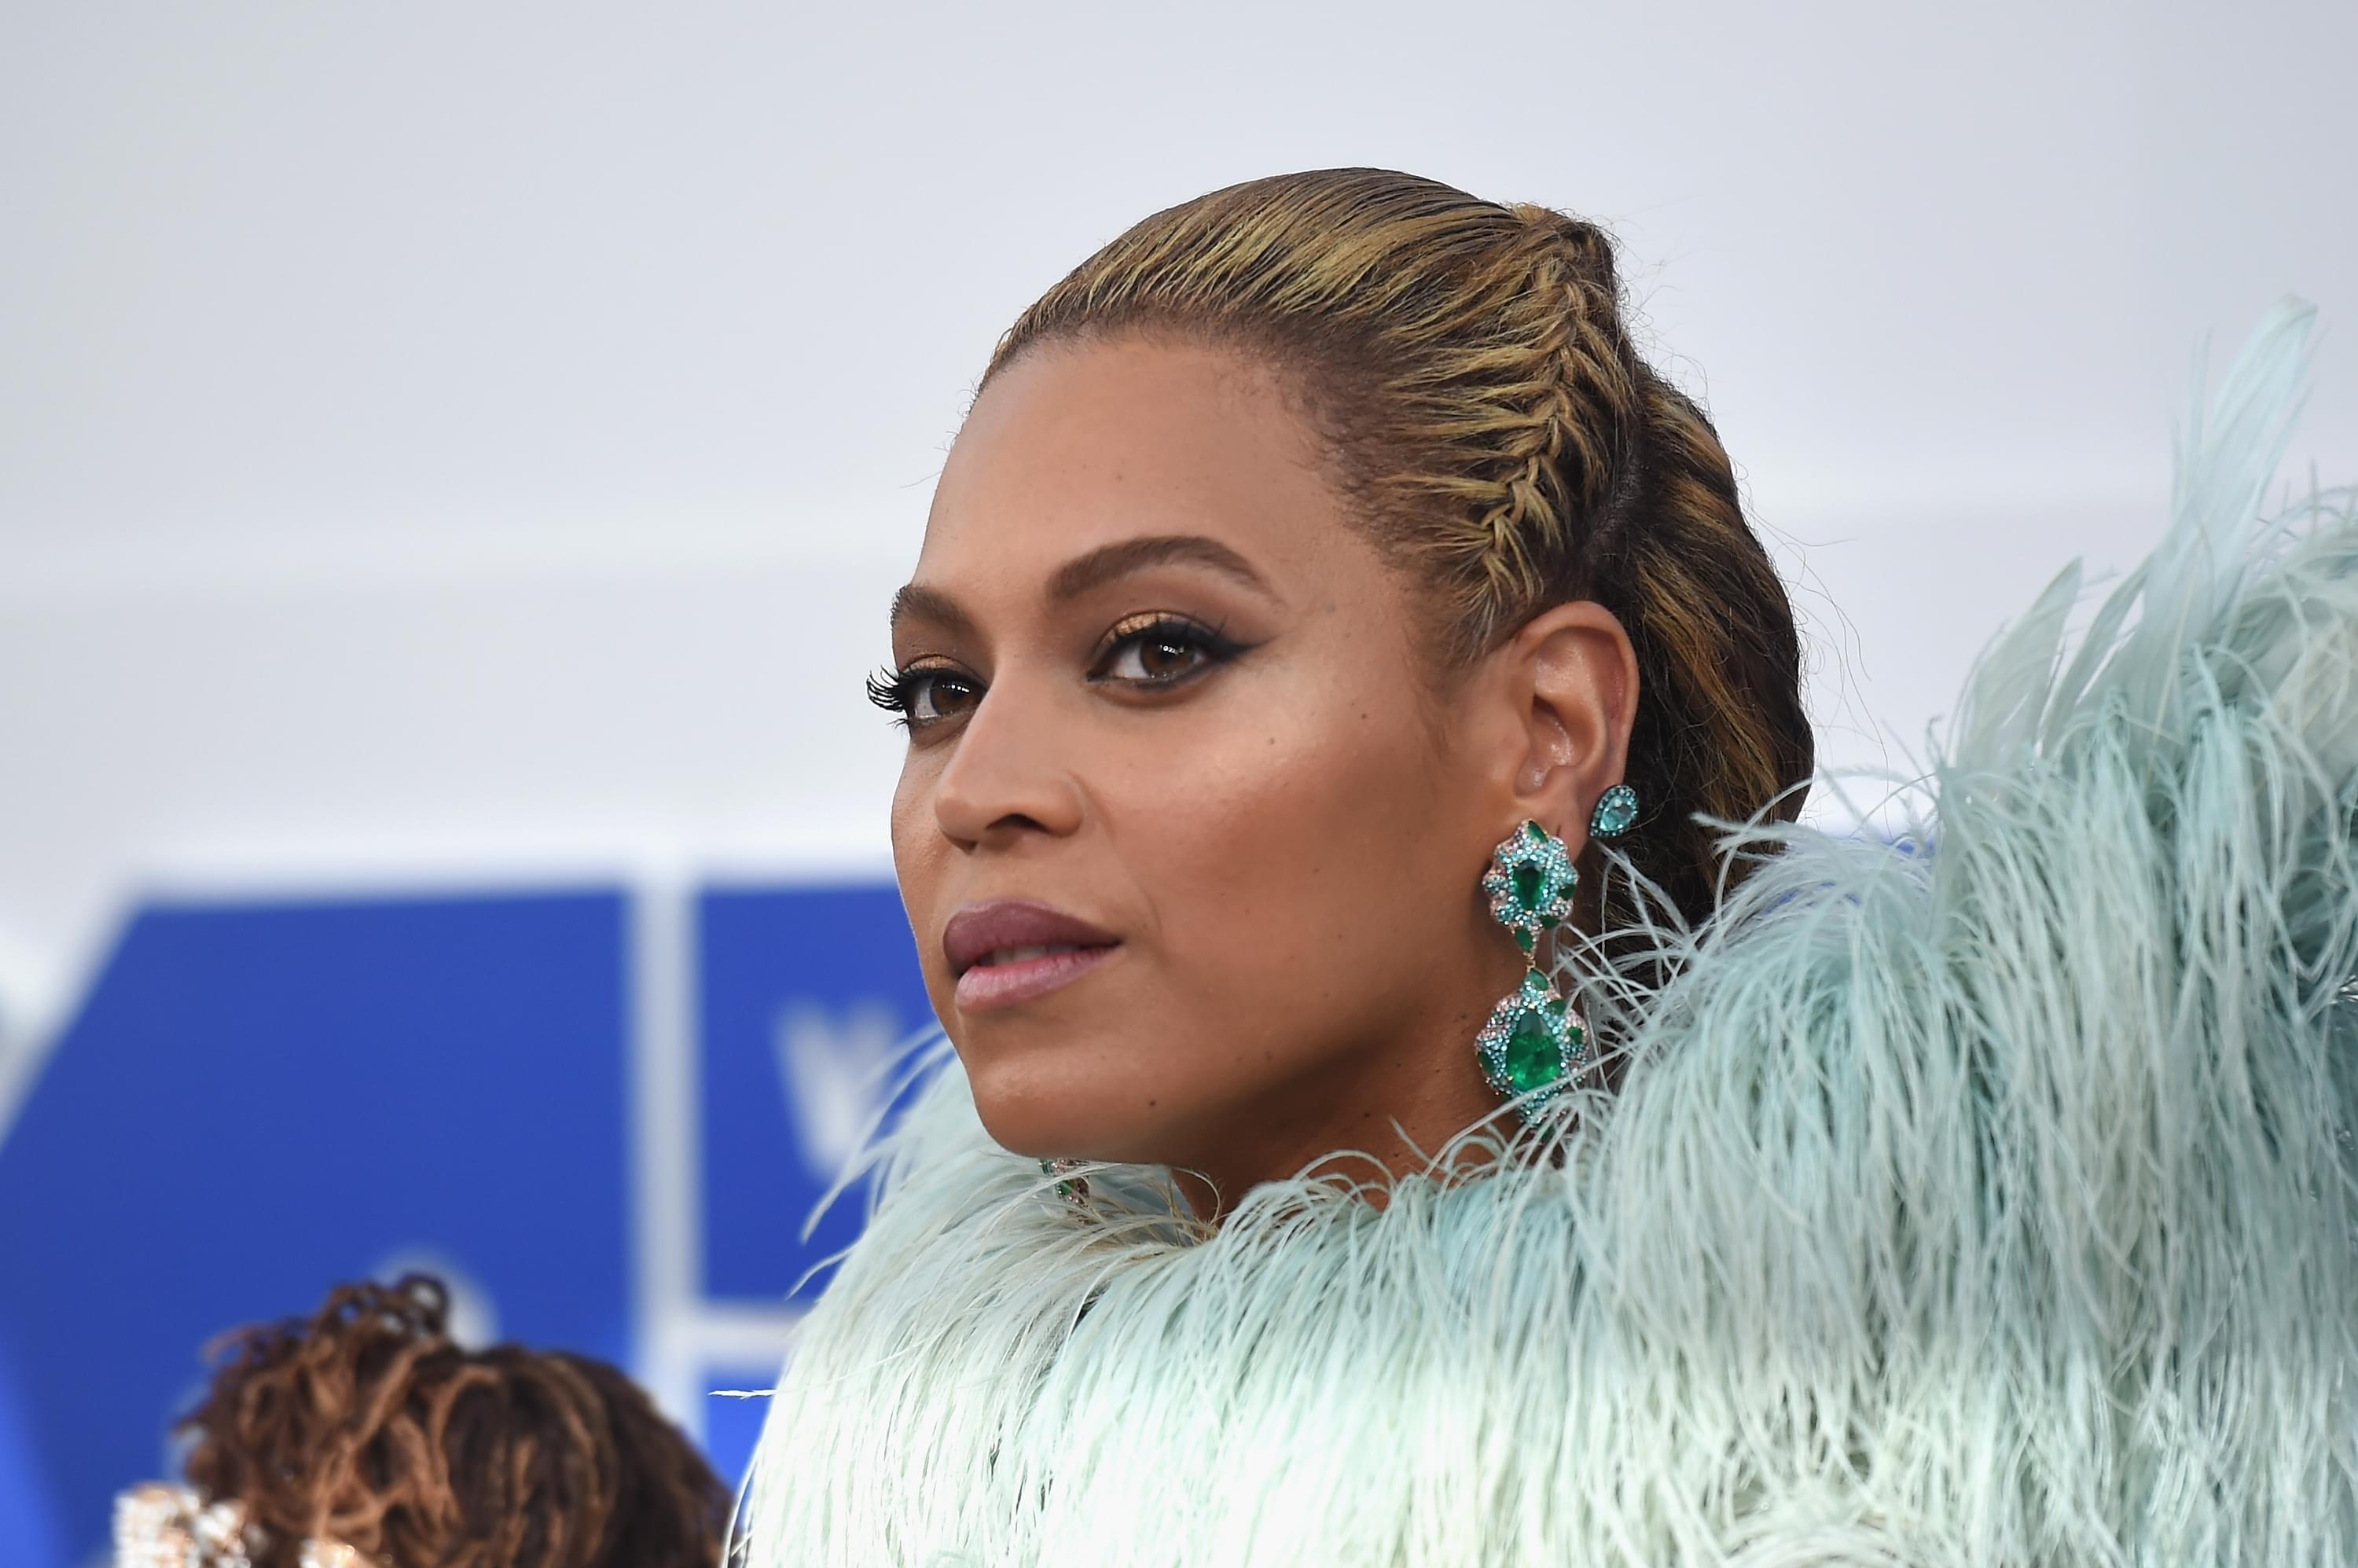 WATCH: Beyonce's 'Black Is King' Official Trailer